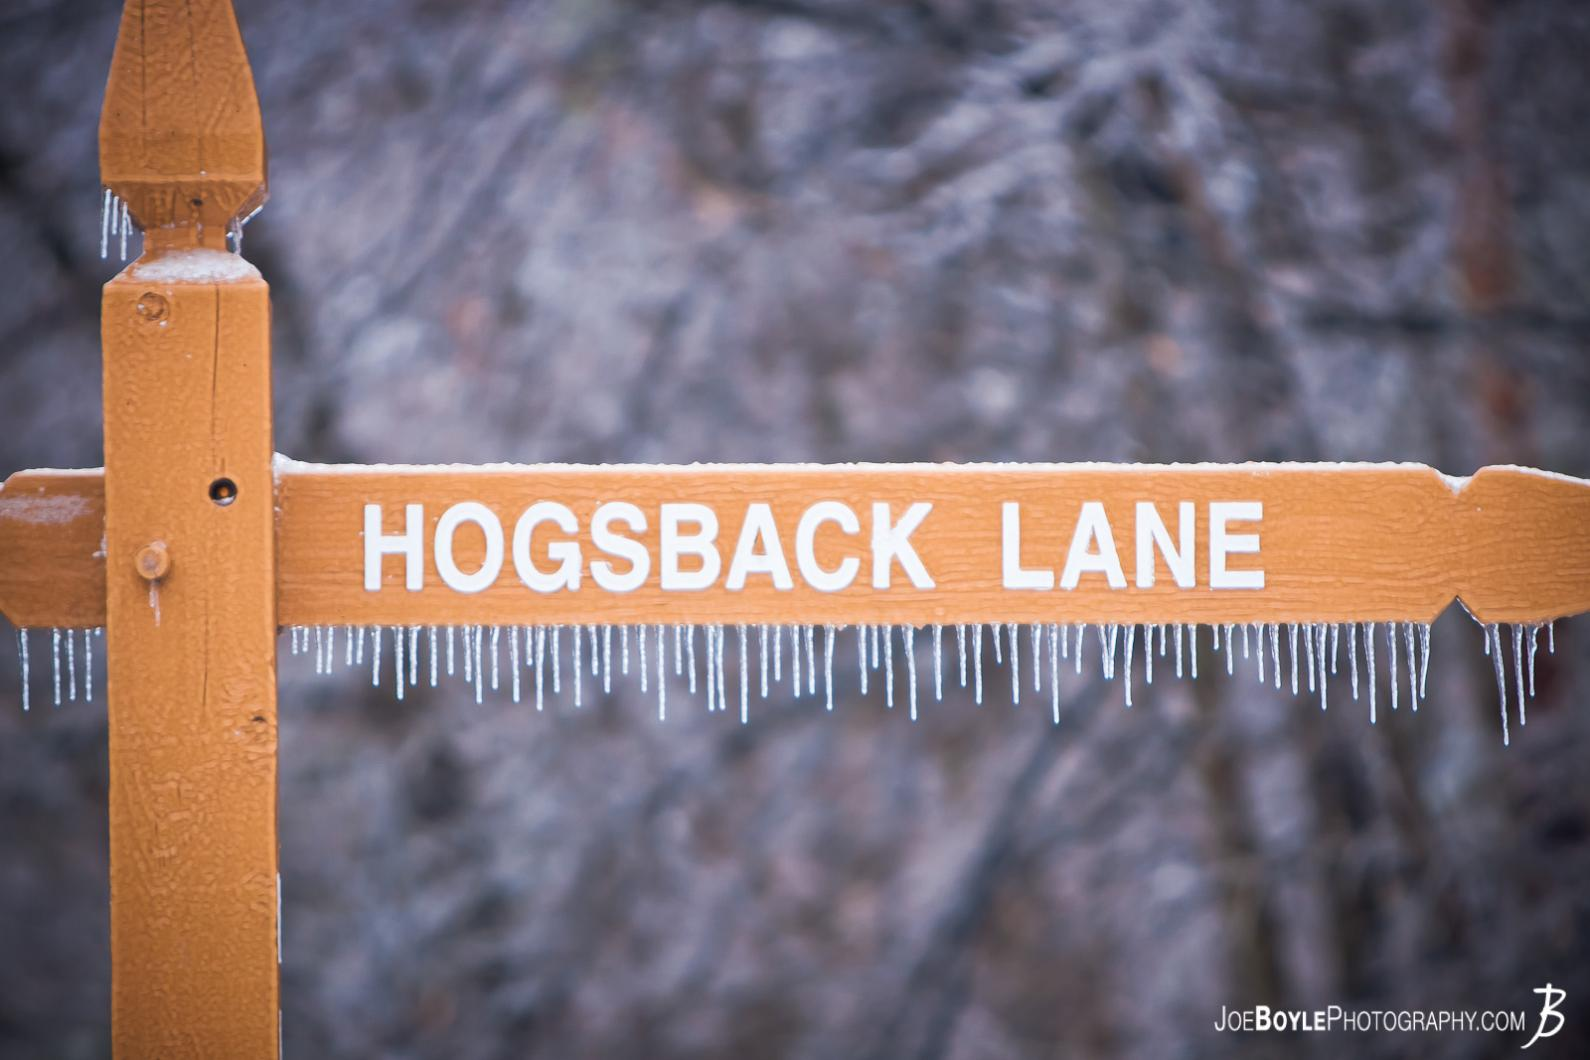 hogsback-lane-in-the-metroparks